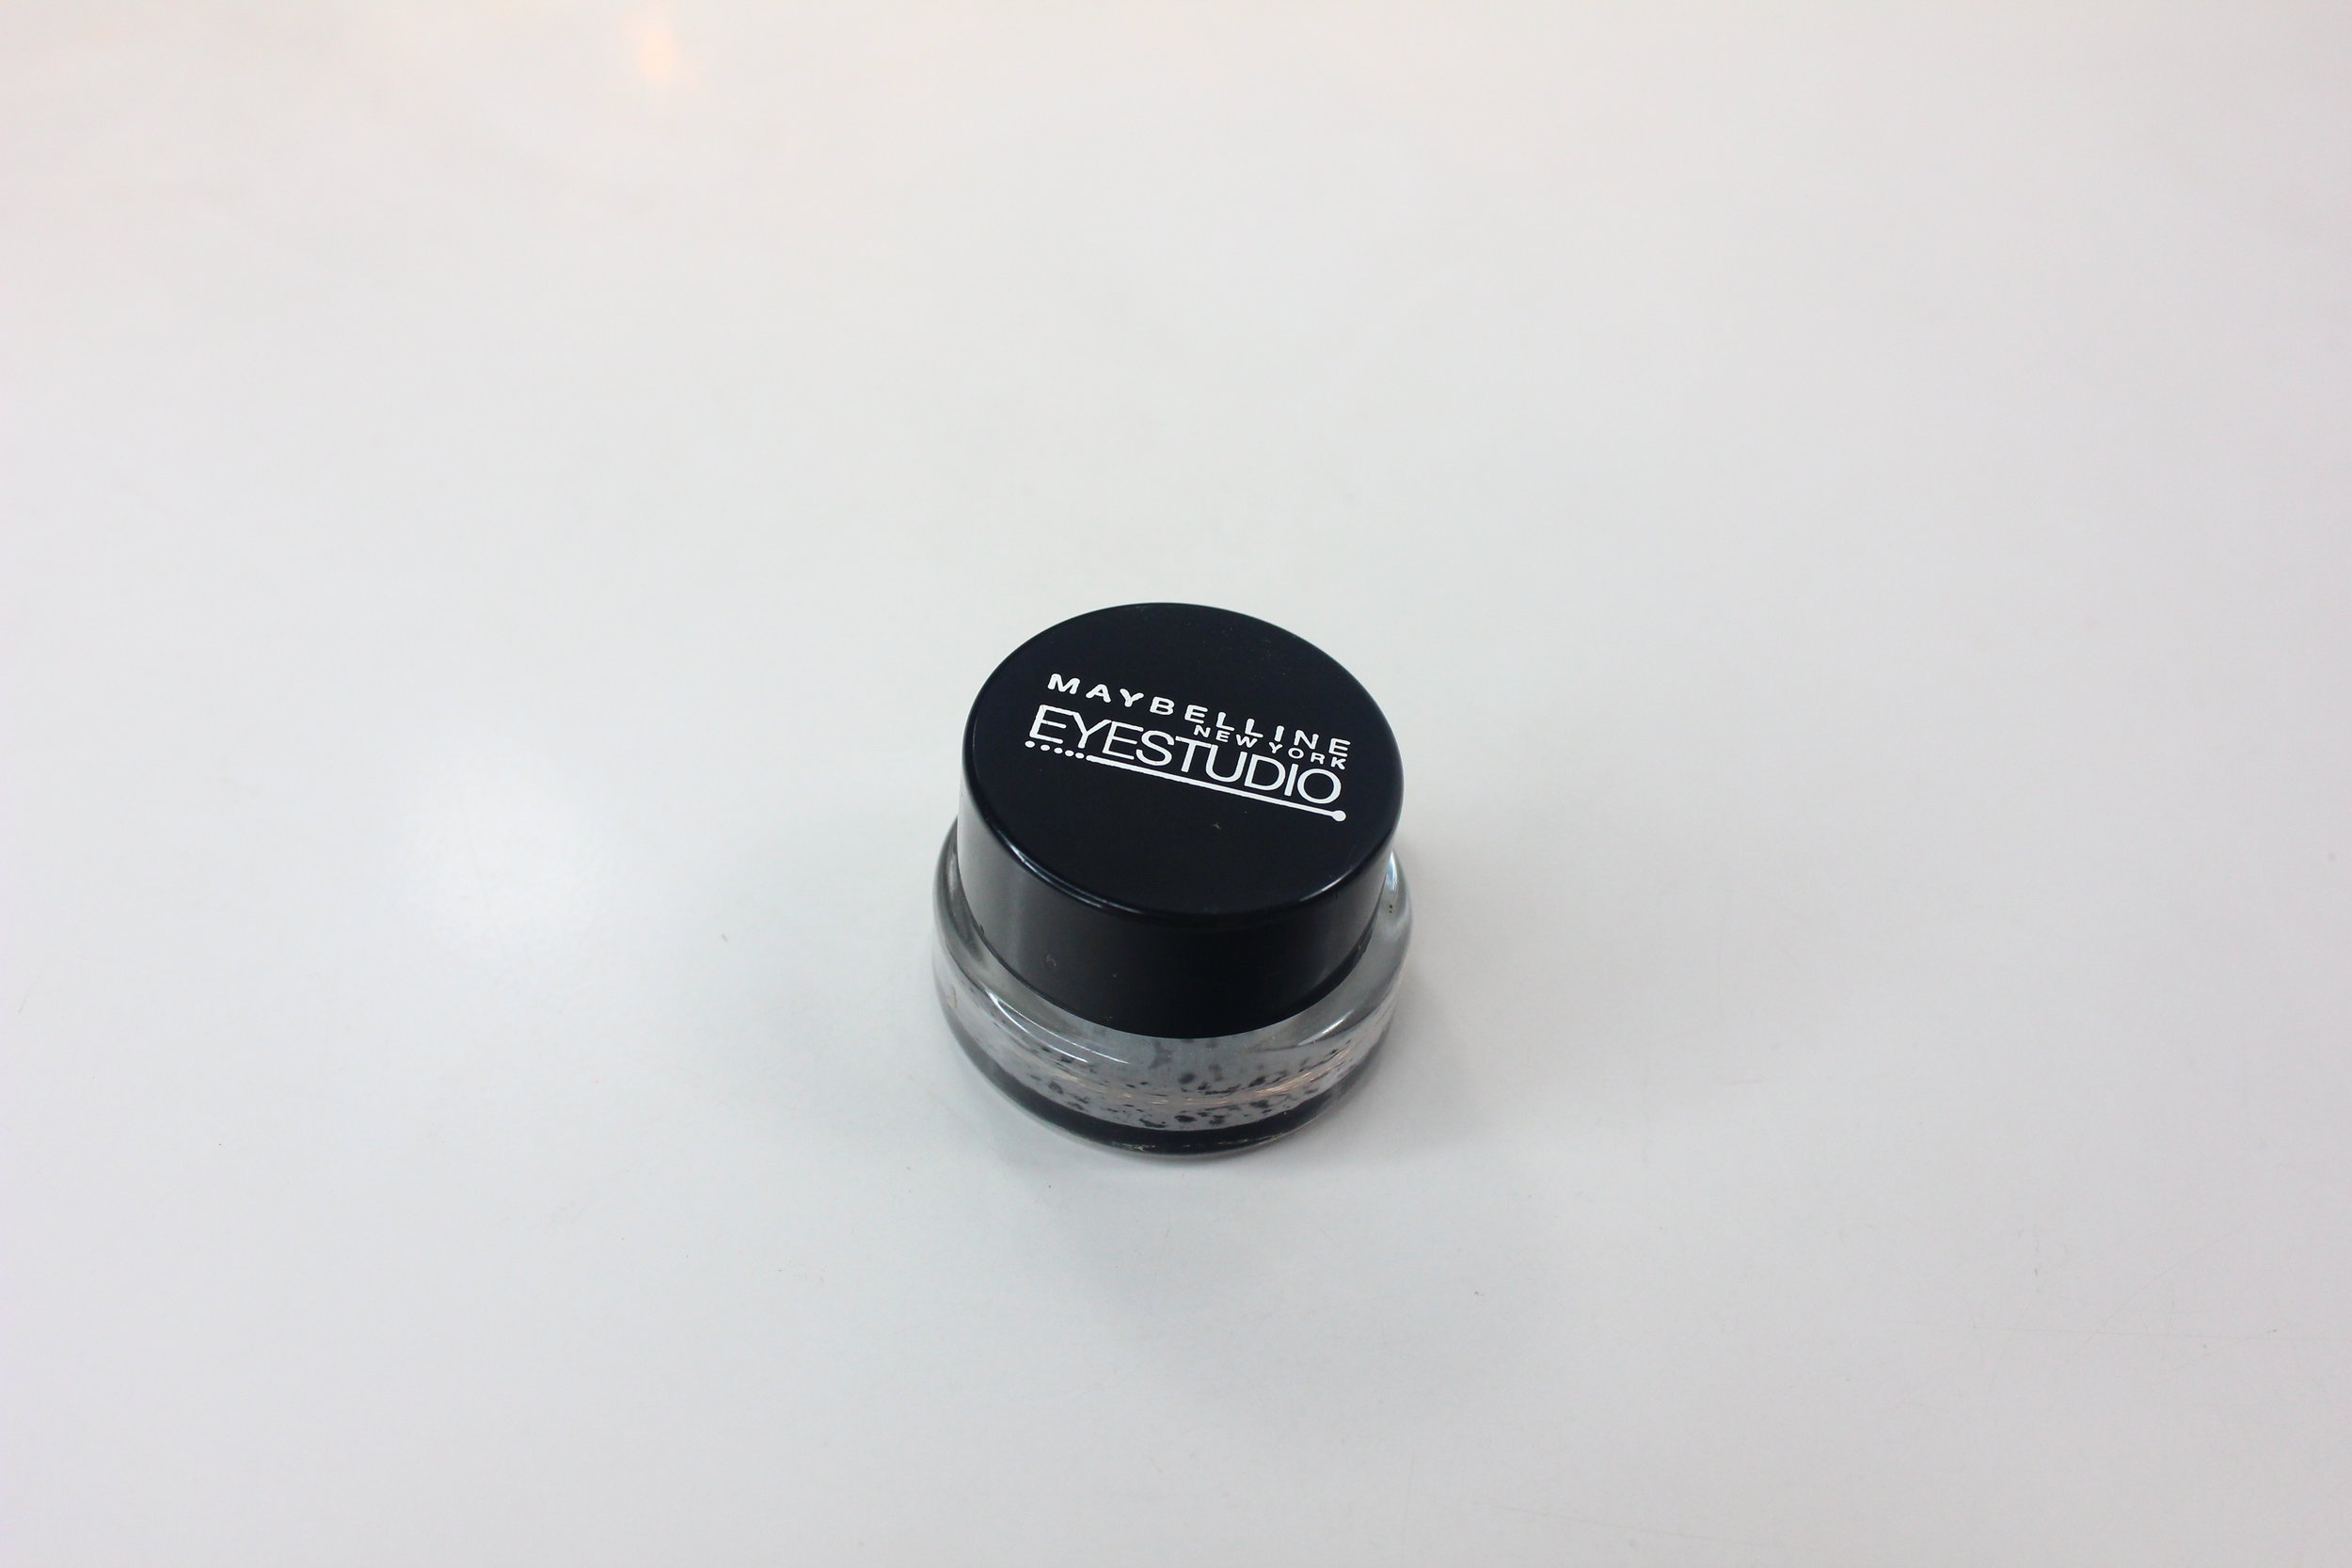 Maybelline Eyestudio Gel Liner black